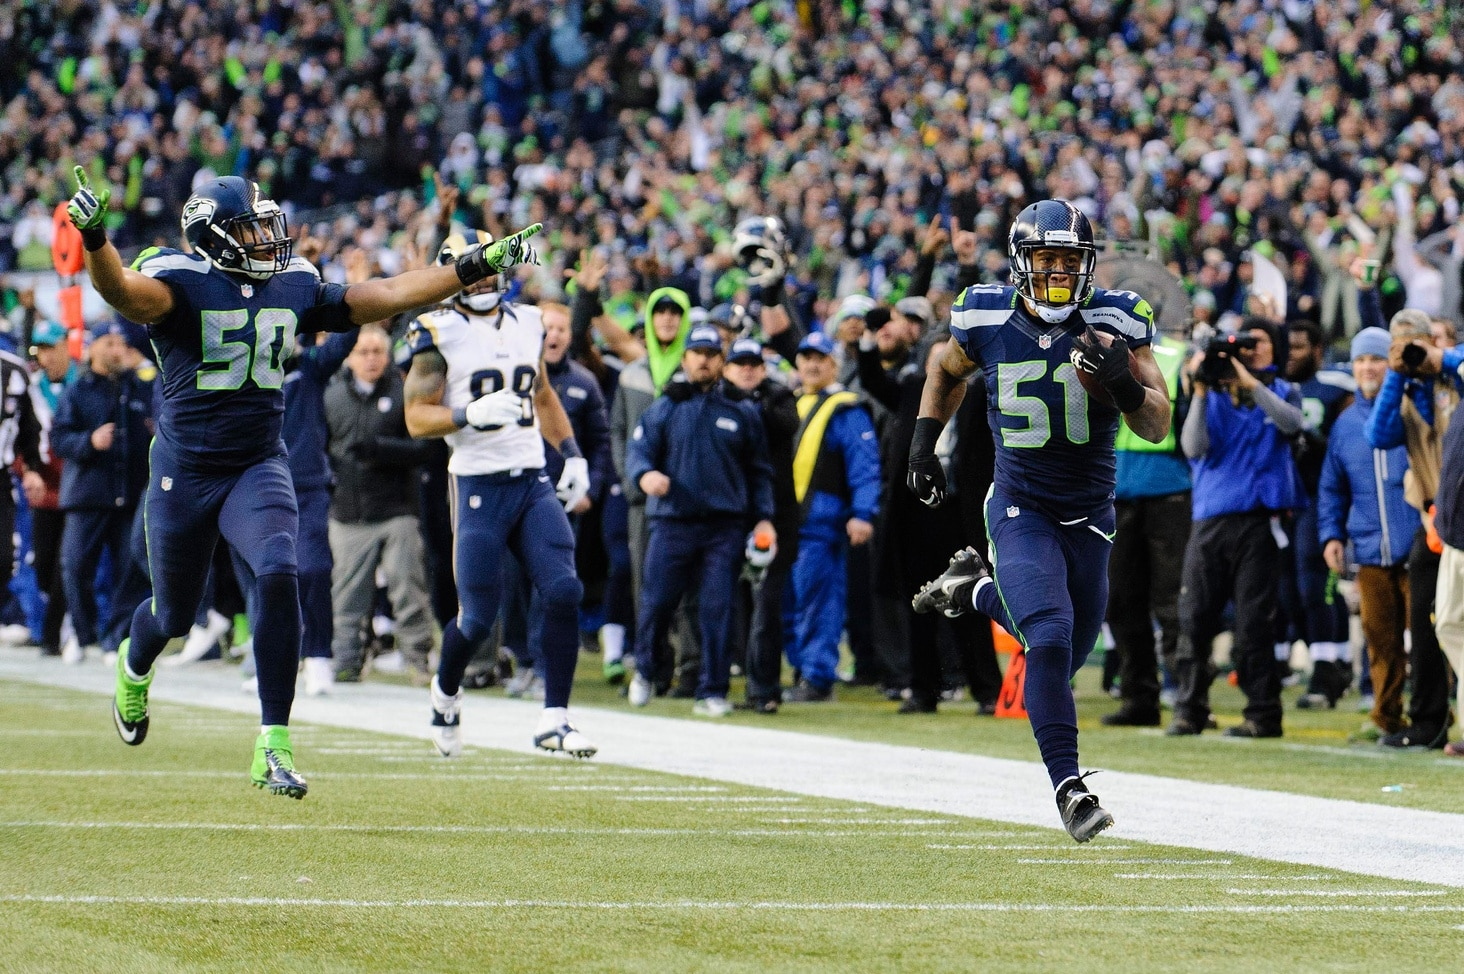 Courtesy of USA Today: Seattle has to be considered favorites to win a second straight title.